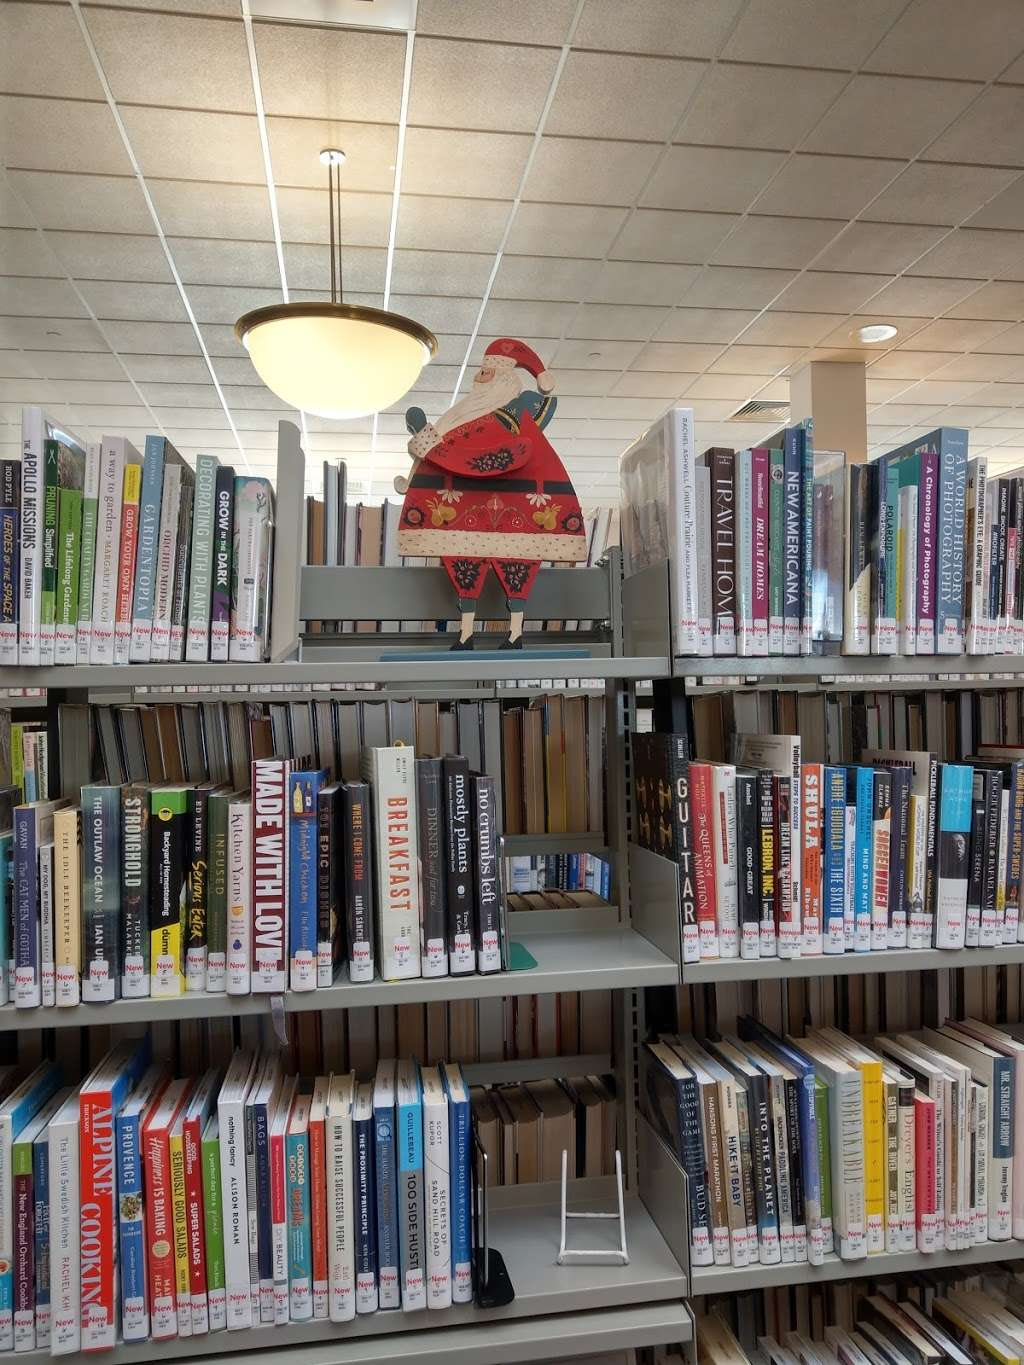 Leach Public Library - library  | Photo 8 of 10 | Address: 276 Mammoth Rd, Londonderry, NH 03053, USA | Phone: (603) 432-1132